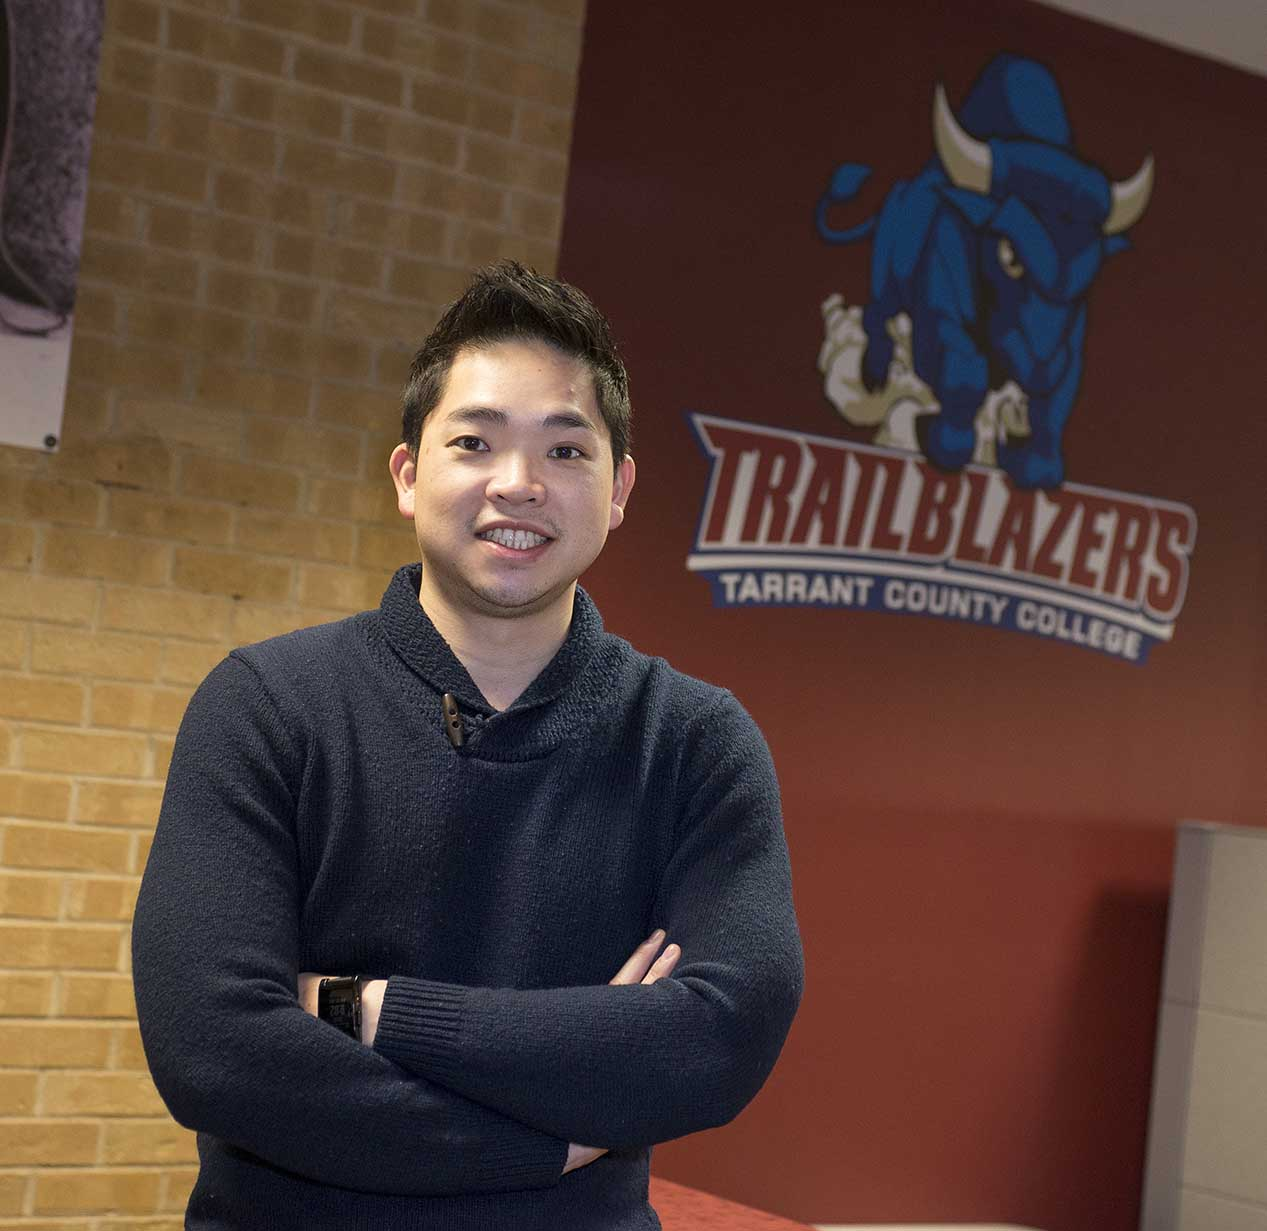 NE Campus introduced a new director of recruitment, former TCC student Martin Pham, at the Feb. 23 board of trustees meeting.